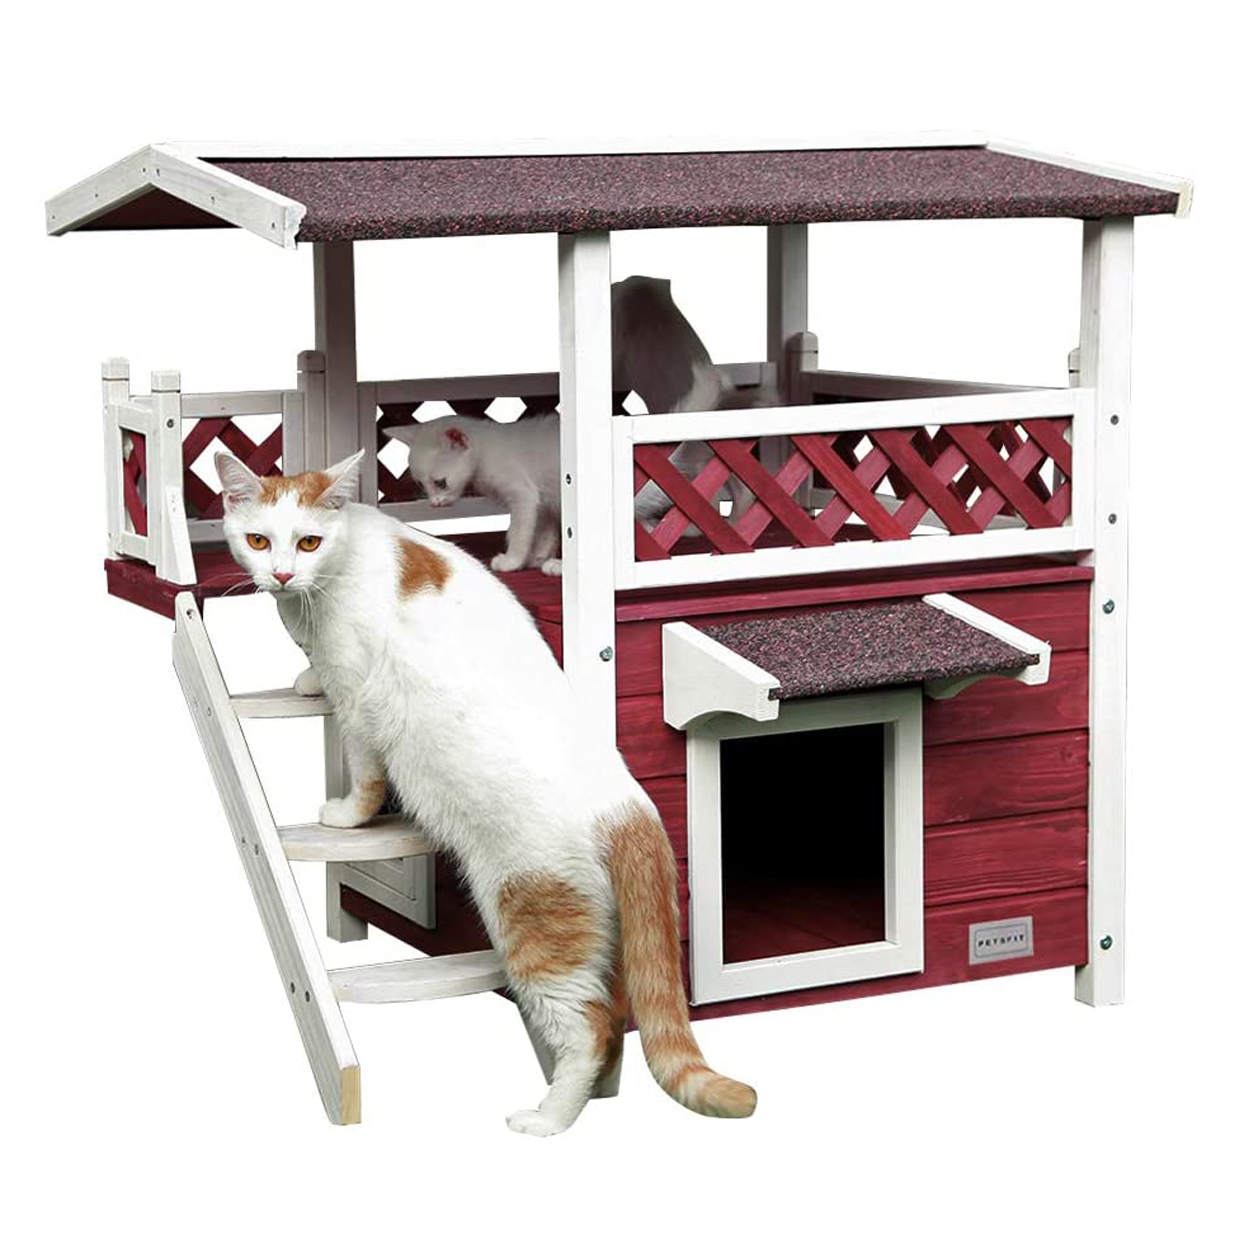 The 9 Best Outdoor Cat Houses Daily Paws